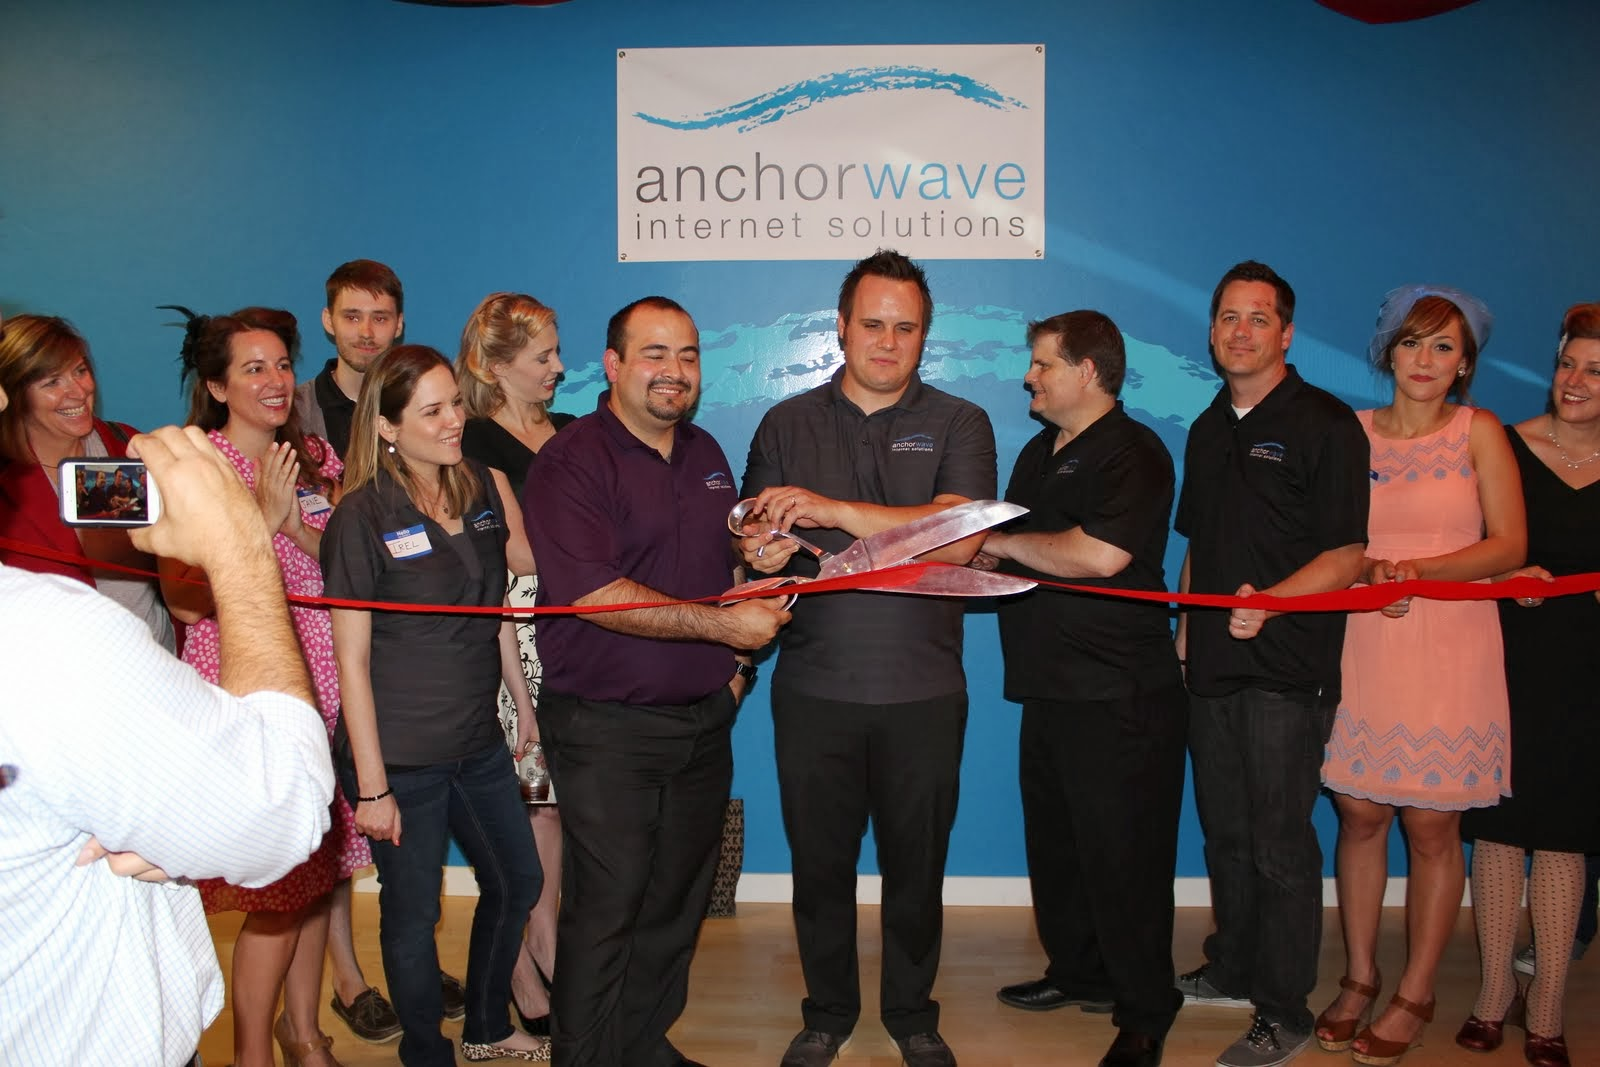 Anchor Wave Internet Solutions celebrated its 10th anniversary with clients and friends.  Since 2003, Anchor Wave has developed more than 740 websites for businesses and non-profit organizations in Southern Arizona and the US and offers custom web development, search engine optimization, pay-per-click advertising, and email and social media marketing services.